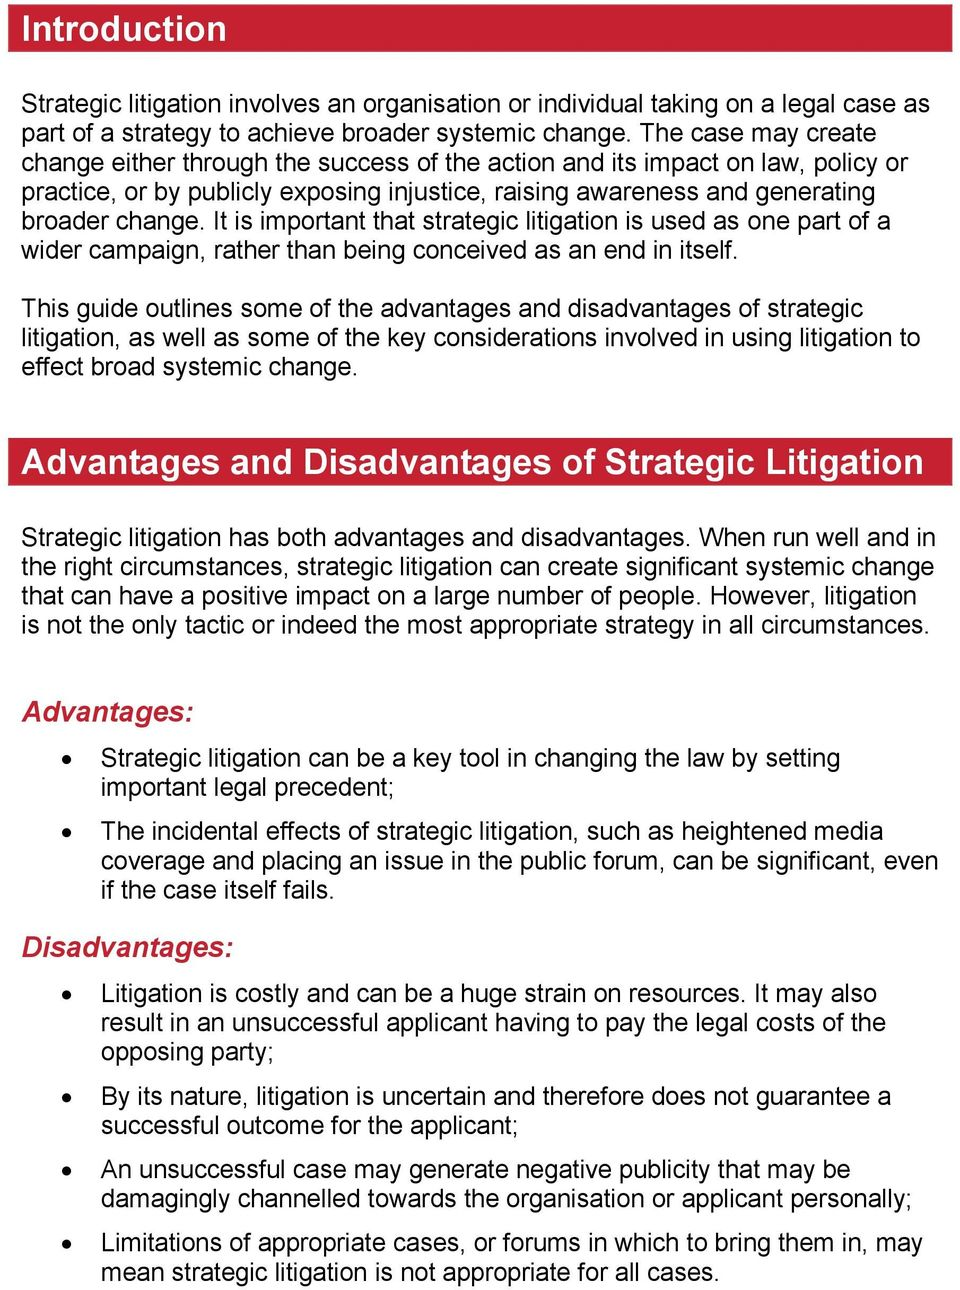 It is important that strategic litigation is used as one part of a wider campaign, rather than being conceived as an end in itself.